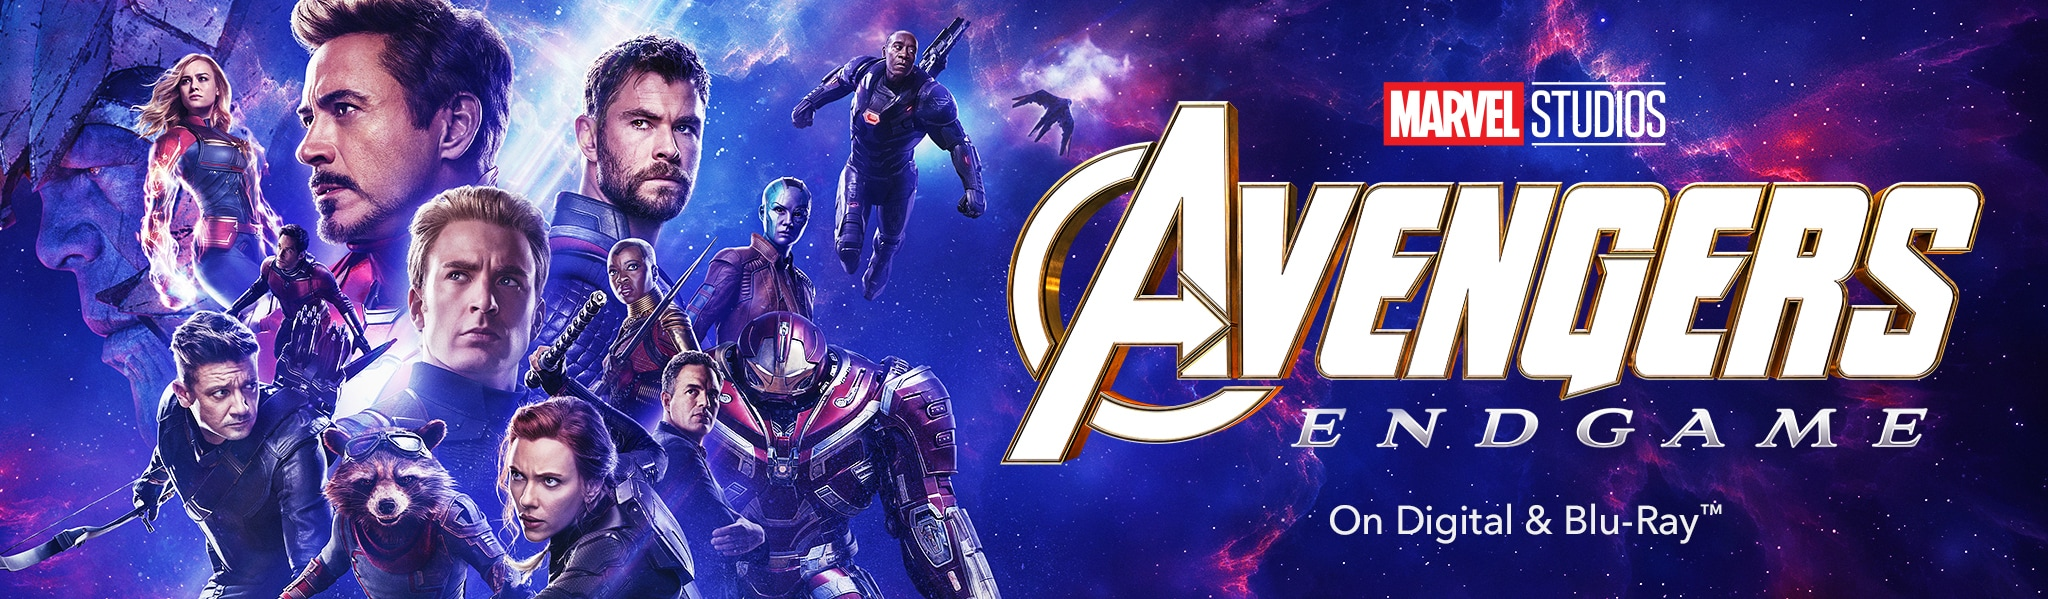 Marvel Studios - Avengers Endgame - On Digital & Blu-ray